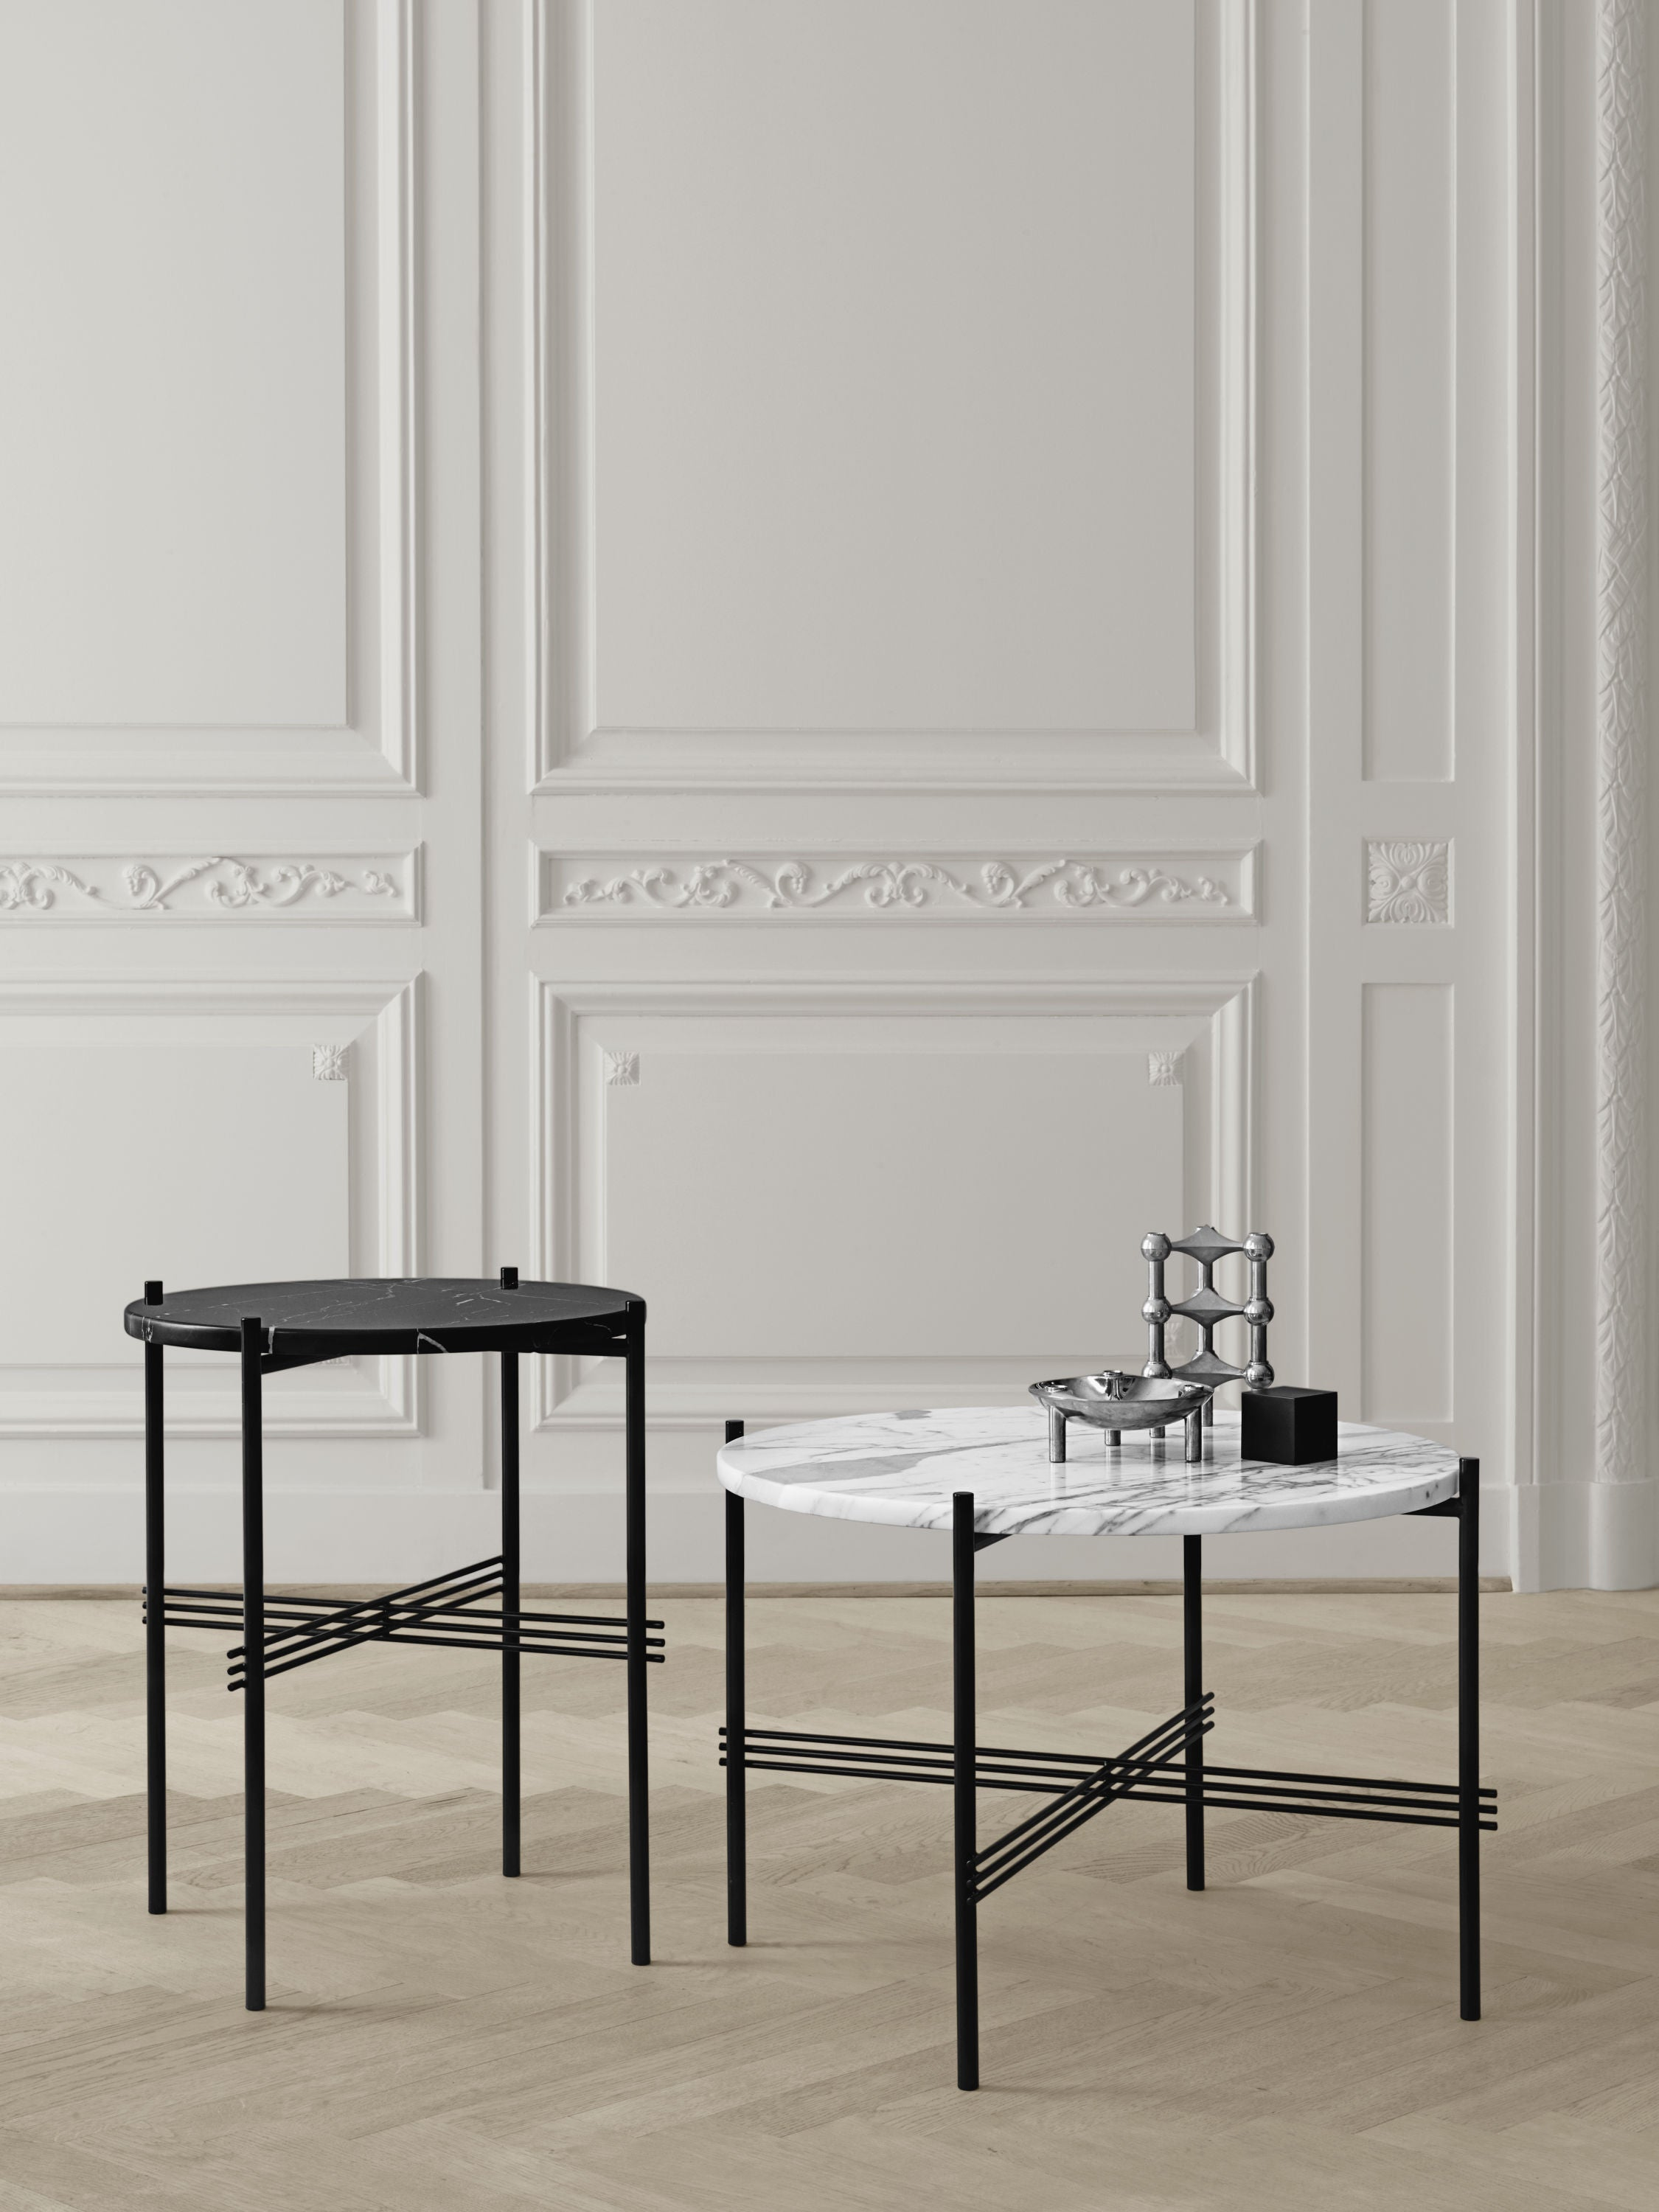 TS Coffee Table - Dia 55 Black base, glass oyster white top fra GUBI